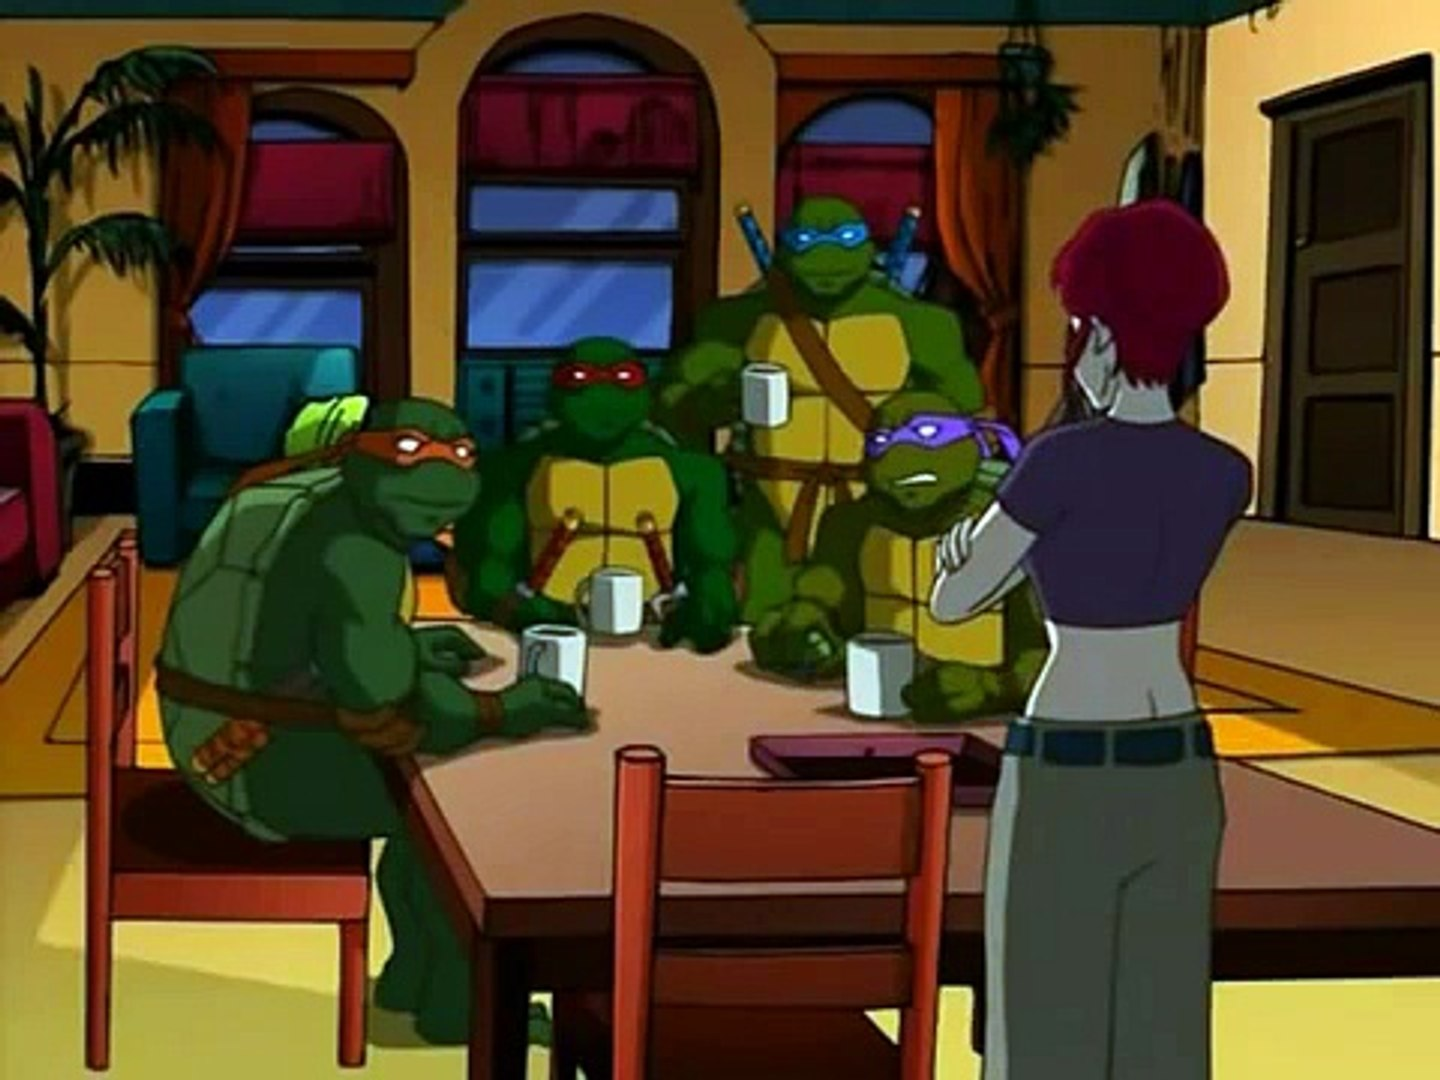 Tmnt S03e13 The Lesson Widescreen Dailymotion Video